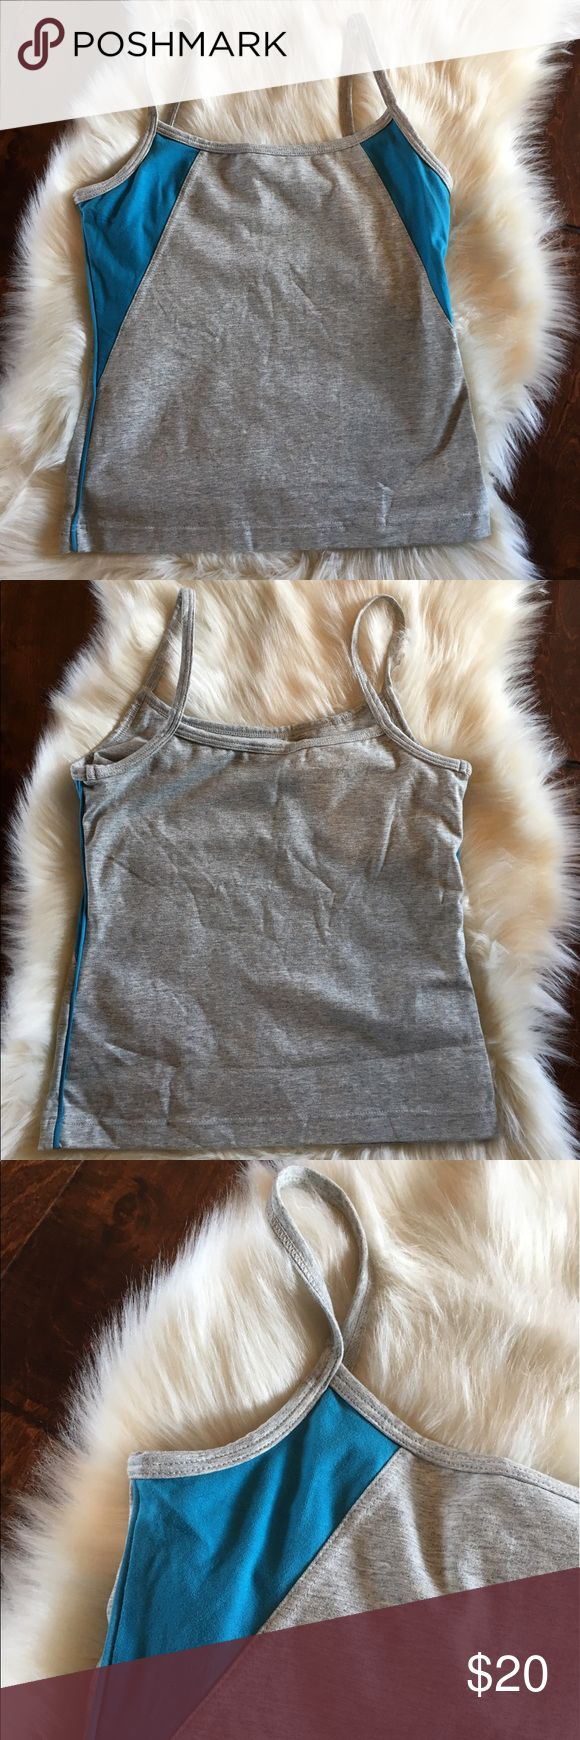 """J. Crew Gym Tank Top with Built in Bra J. Crew Gym tank top with built in shelf bra. Size medium.  Has spaghetti strap. Color is heathered grey with turquoise blue trim. Measures about 21"""" from strap to bottom hem and about 14.5"""" across the chest.  Offer and bundles welcome! J. Crew Tops Tank Tops"""